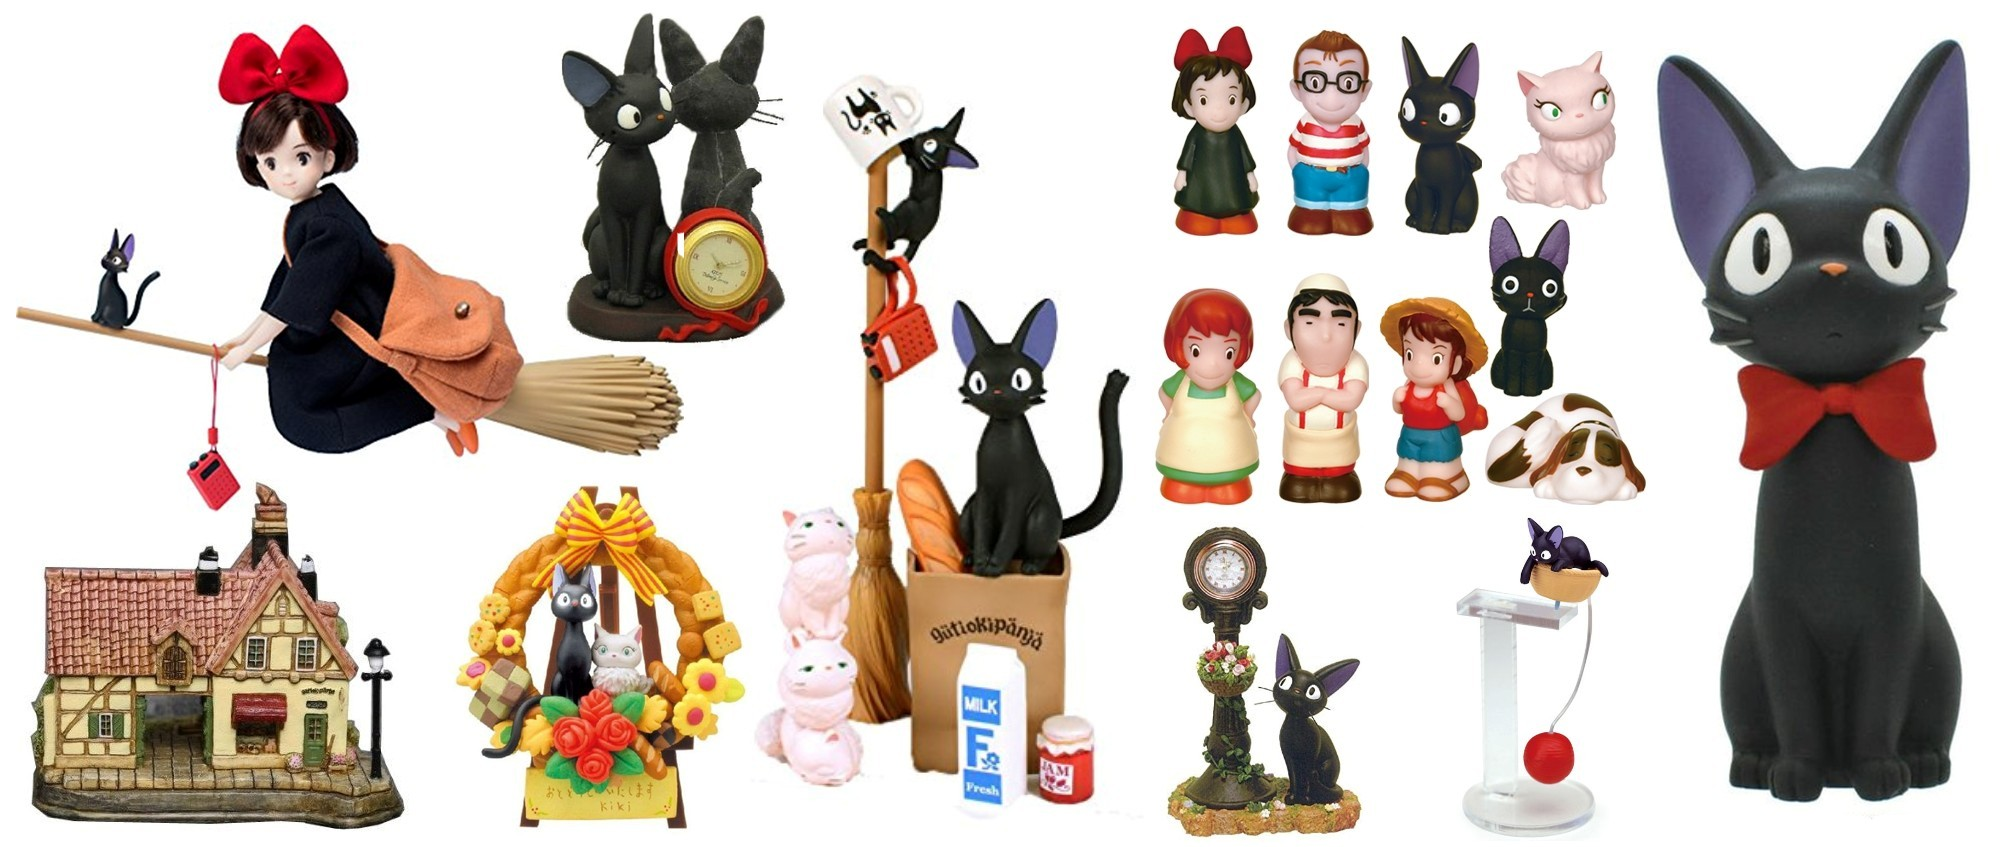 Kiki's Delivery Service Figurines